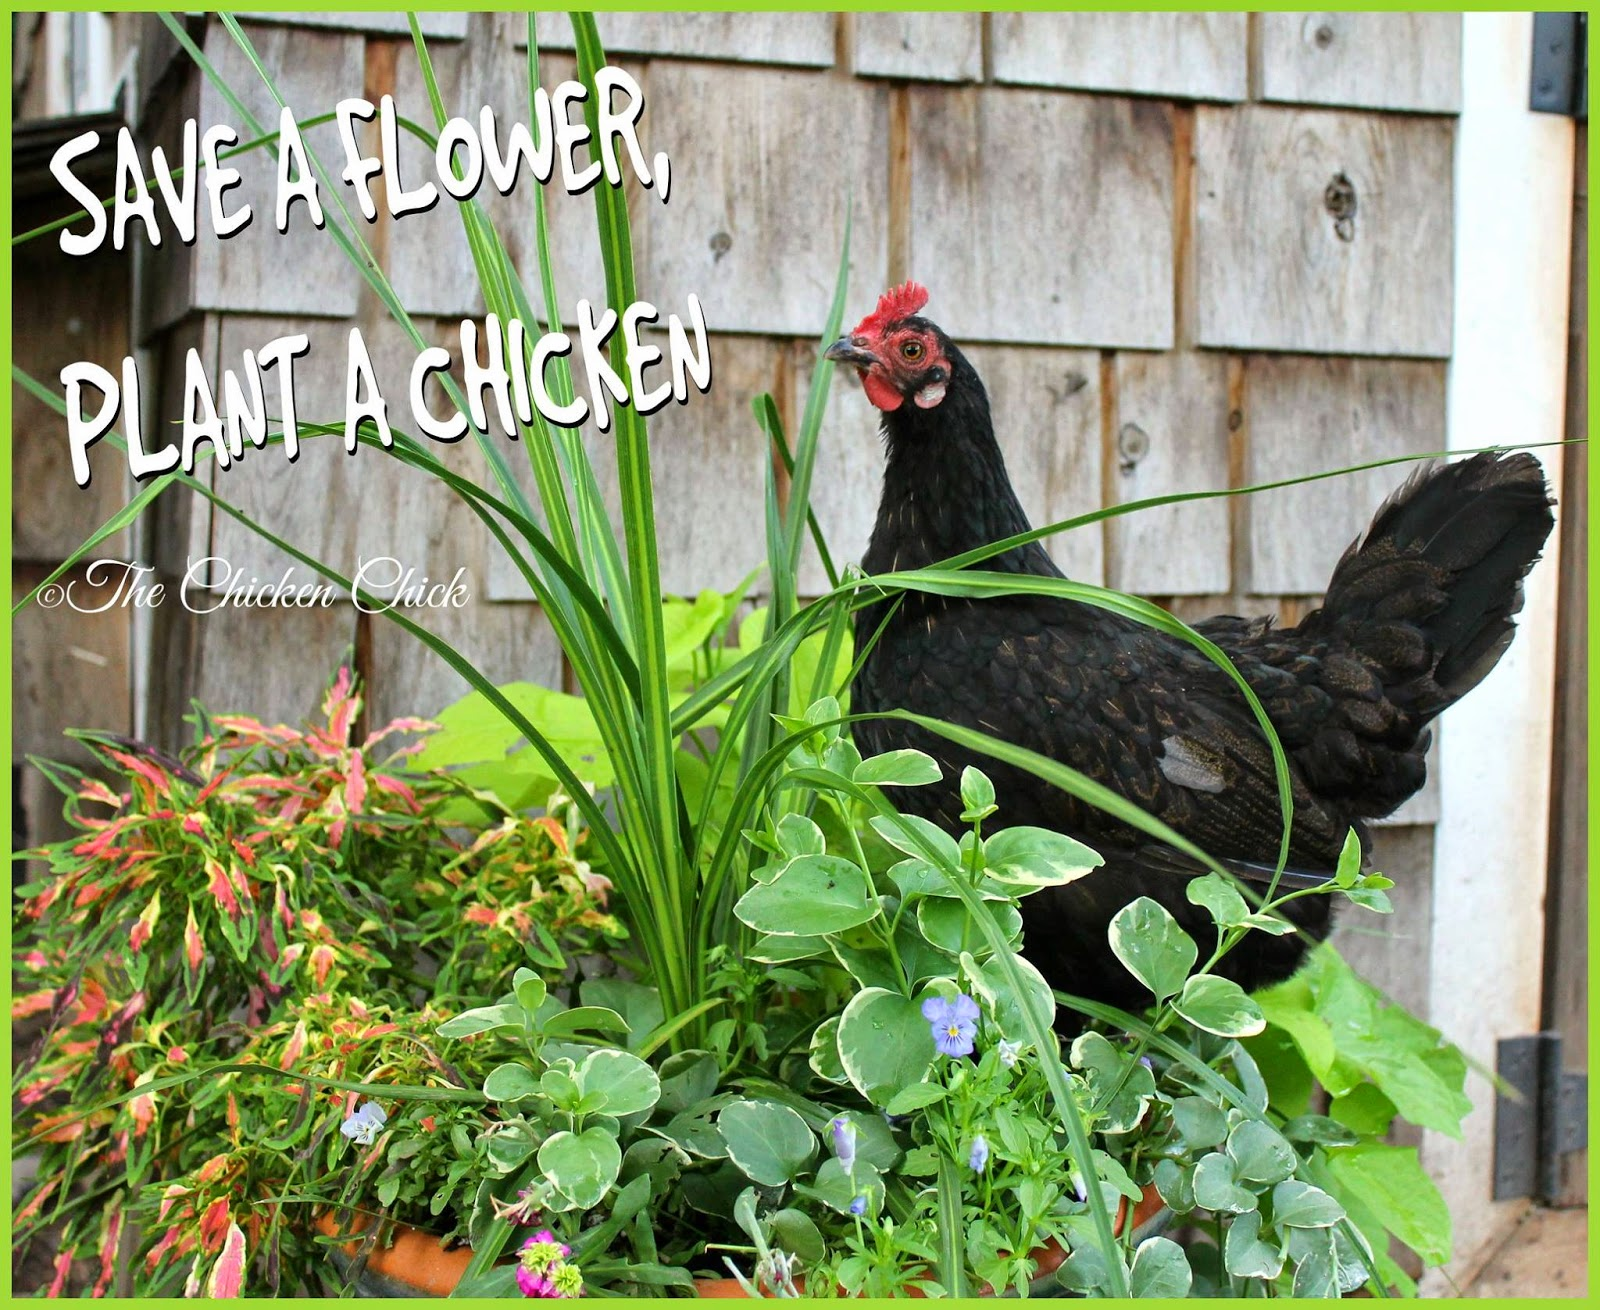 Save a flower, plant a chicken.